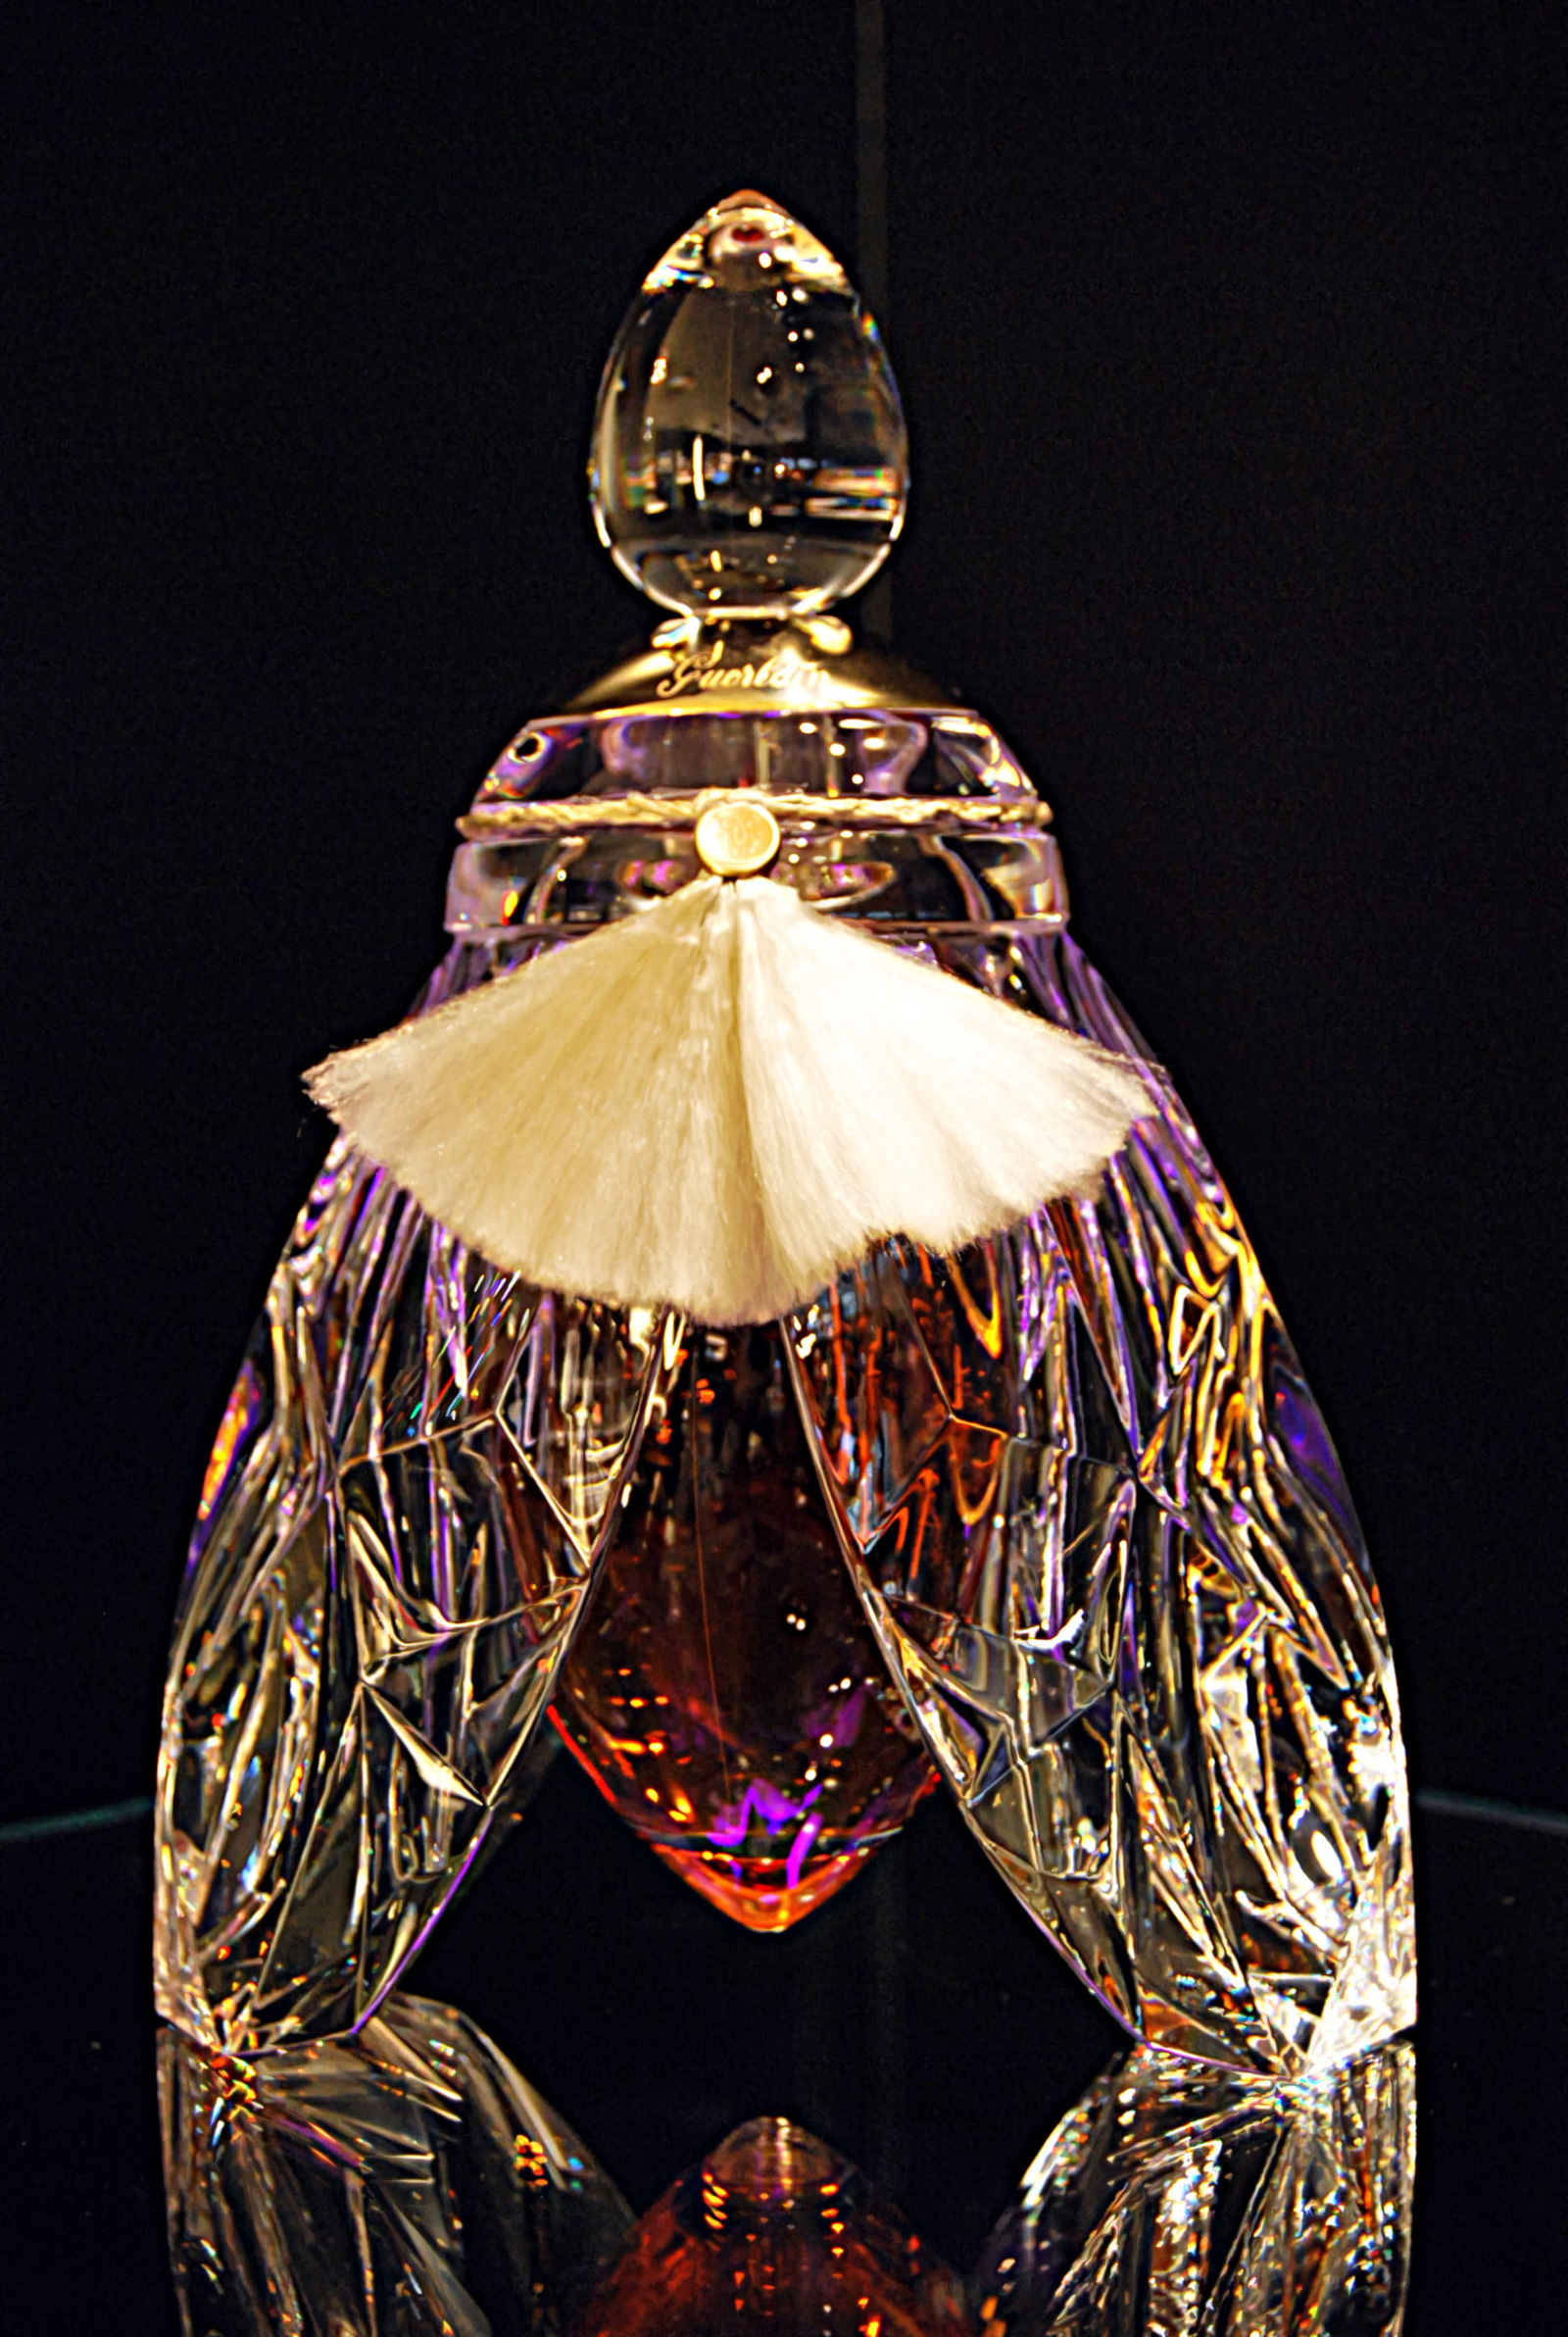 L'Abeille-de-Guerlain-Luxury-Fragrance